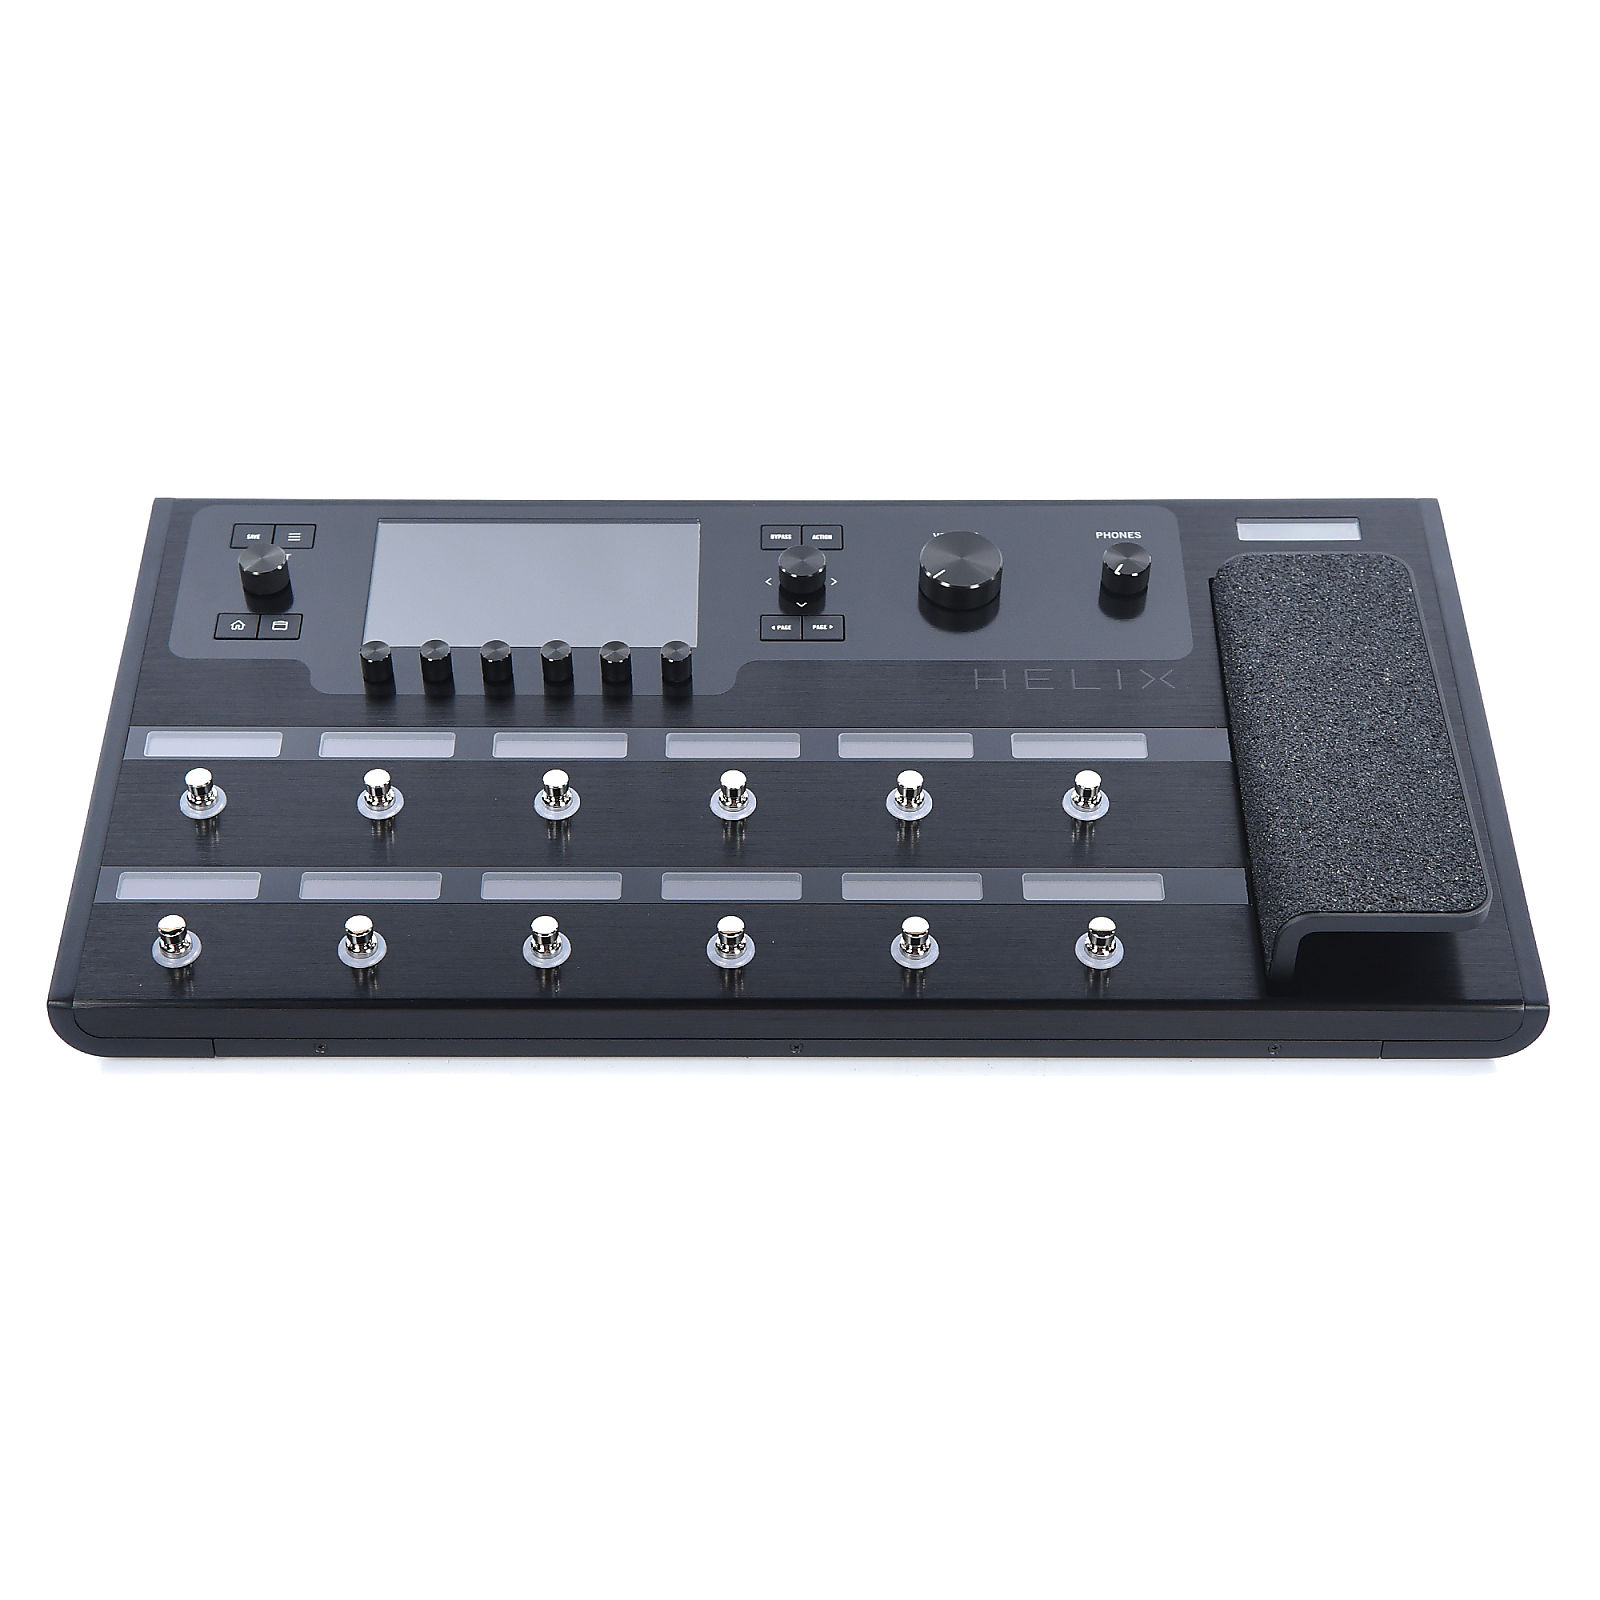 Line 6 Helix Dual Multi-Effects Dual DSP-powered Audio Engine w/4 Discrete  Stereo Signal Paths